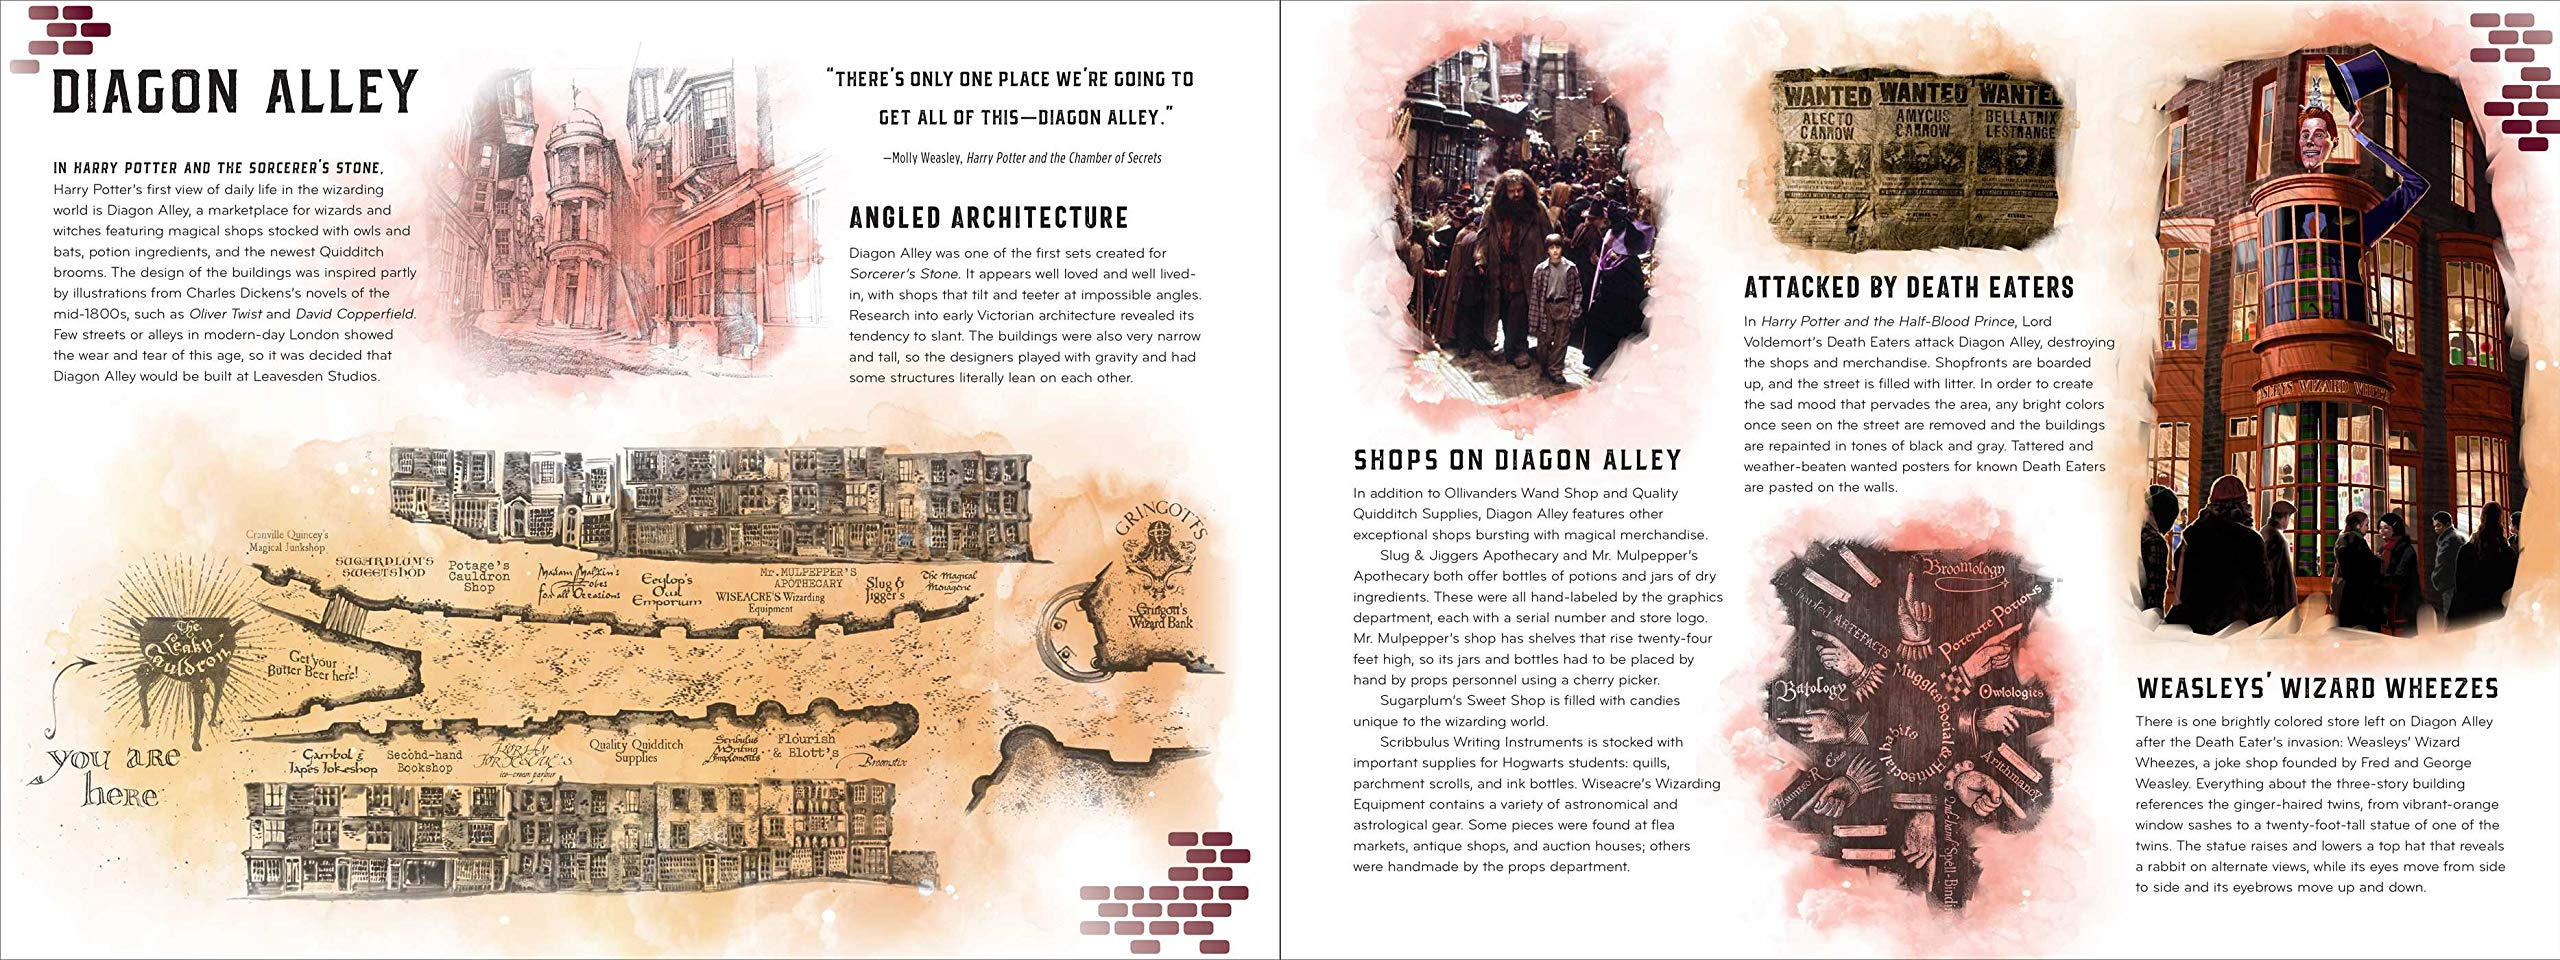 """Harry Potter: Magical Places: A Paper Scene Book"" provides backstory and information about each magical scene depicted."